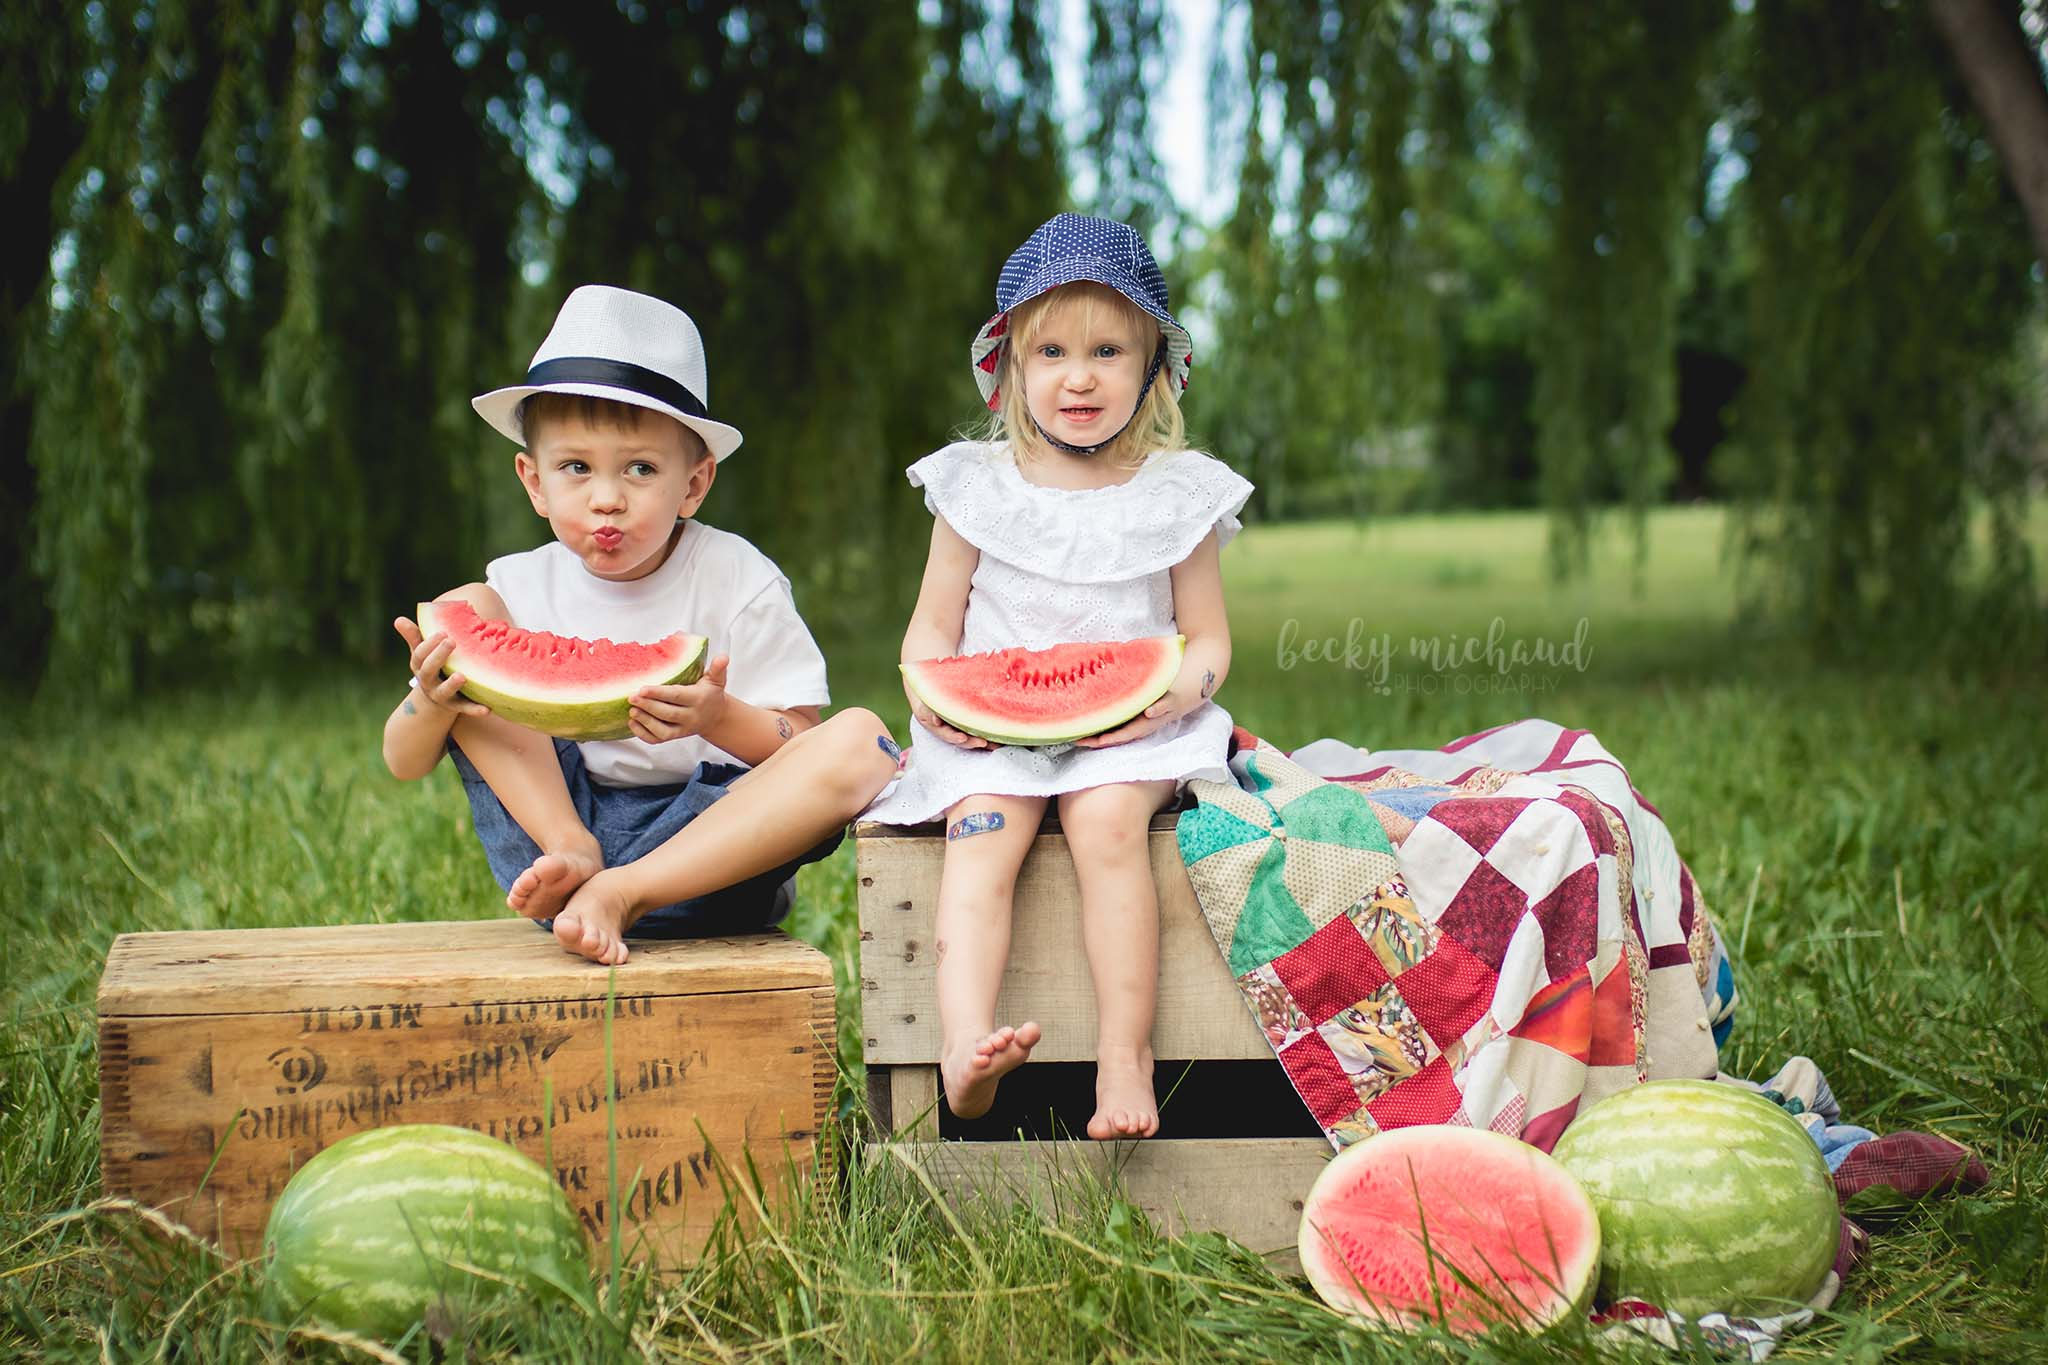 Watermelon Mini Session photo taken by Becky Michaud, Fort Collins photographer